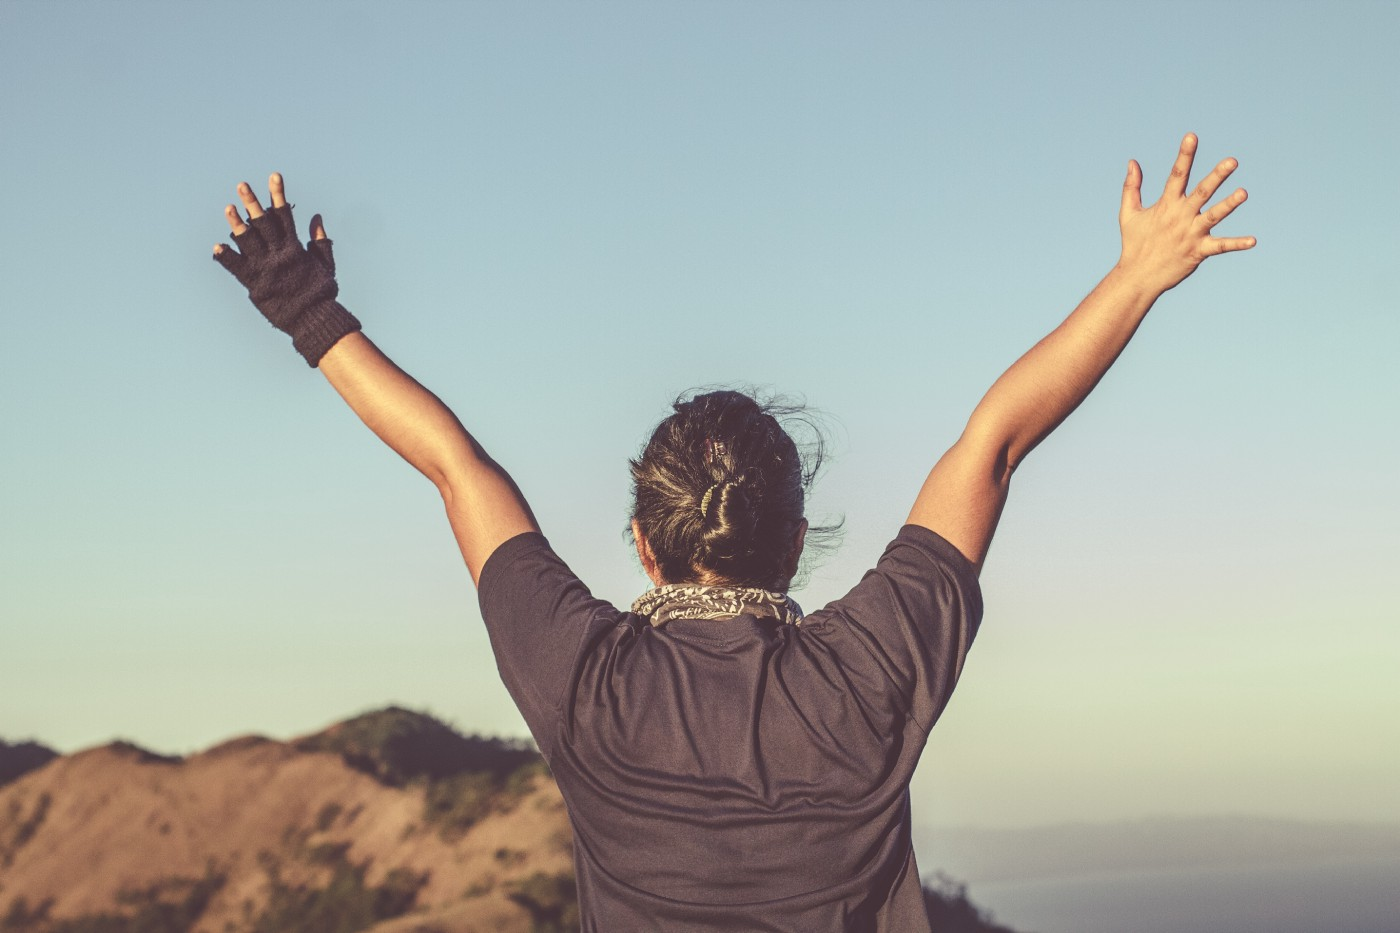 A woman is facing the horizon with her arms held high in a sign of victory